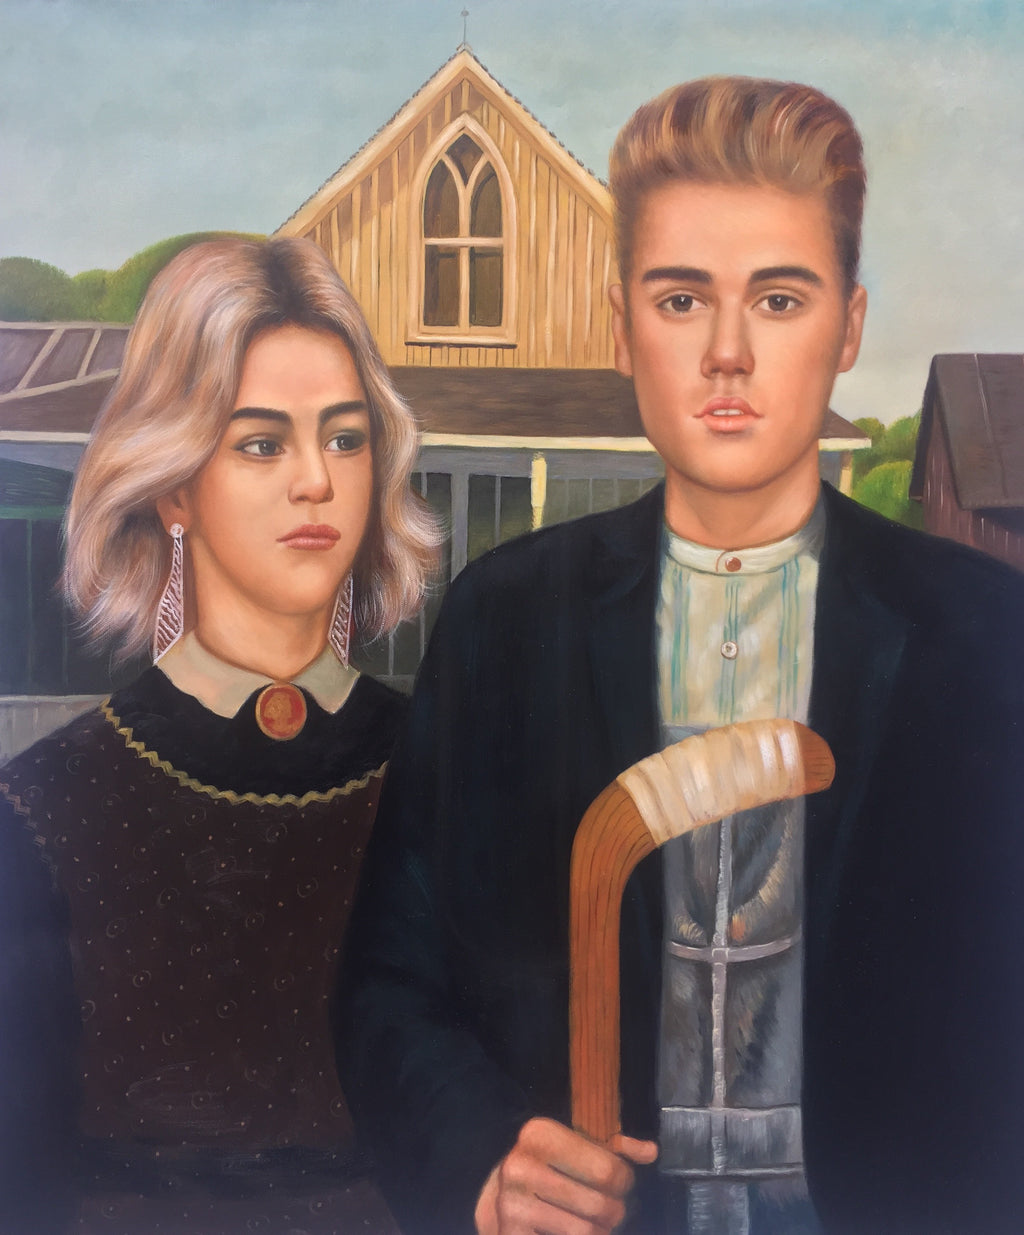 New Oil Painting Celebrates Bieber-Gomez Reunion, 'American Gothic' Style